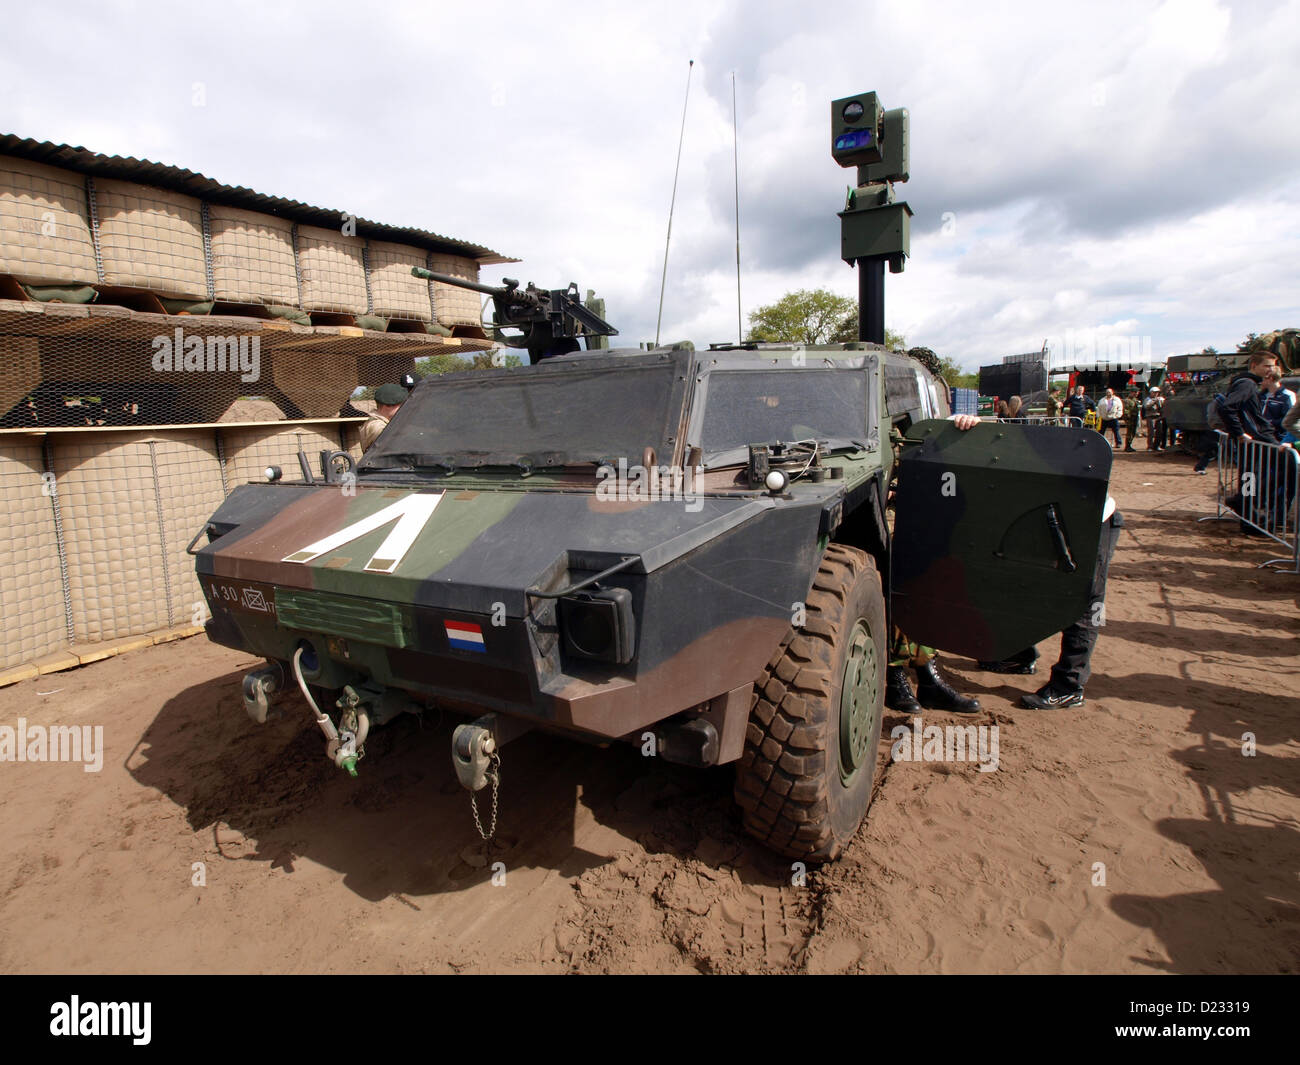 Army Open Day 2012 in the Netherlands Oirschot,Fennek Forward Observer (VWWRN) - Stock Image